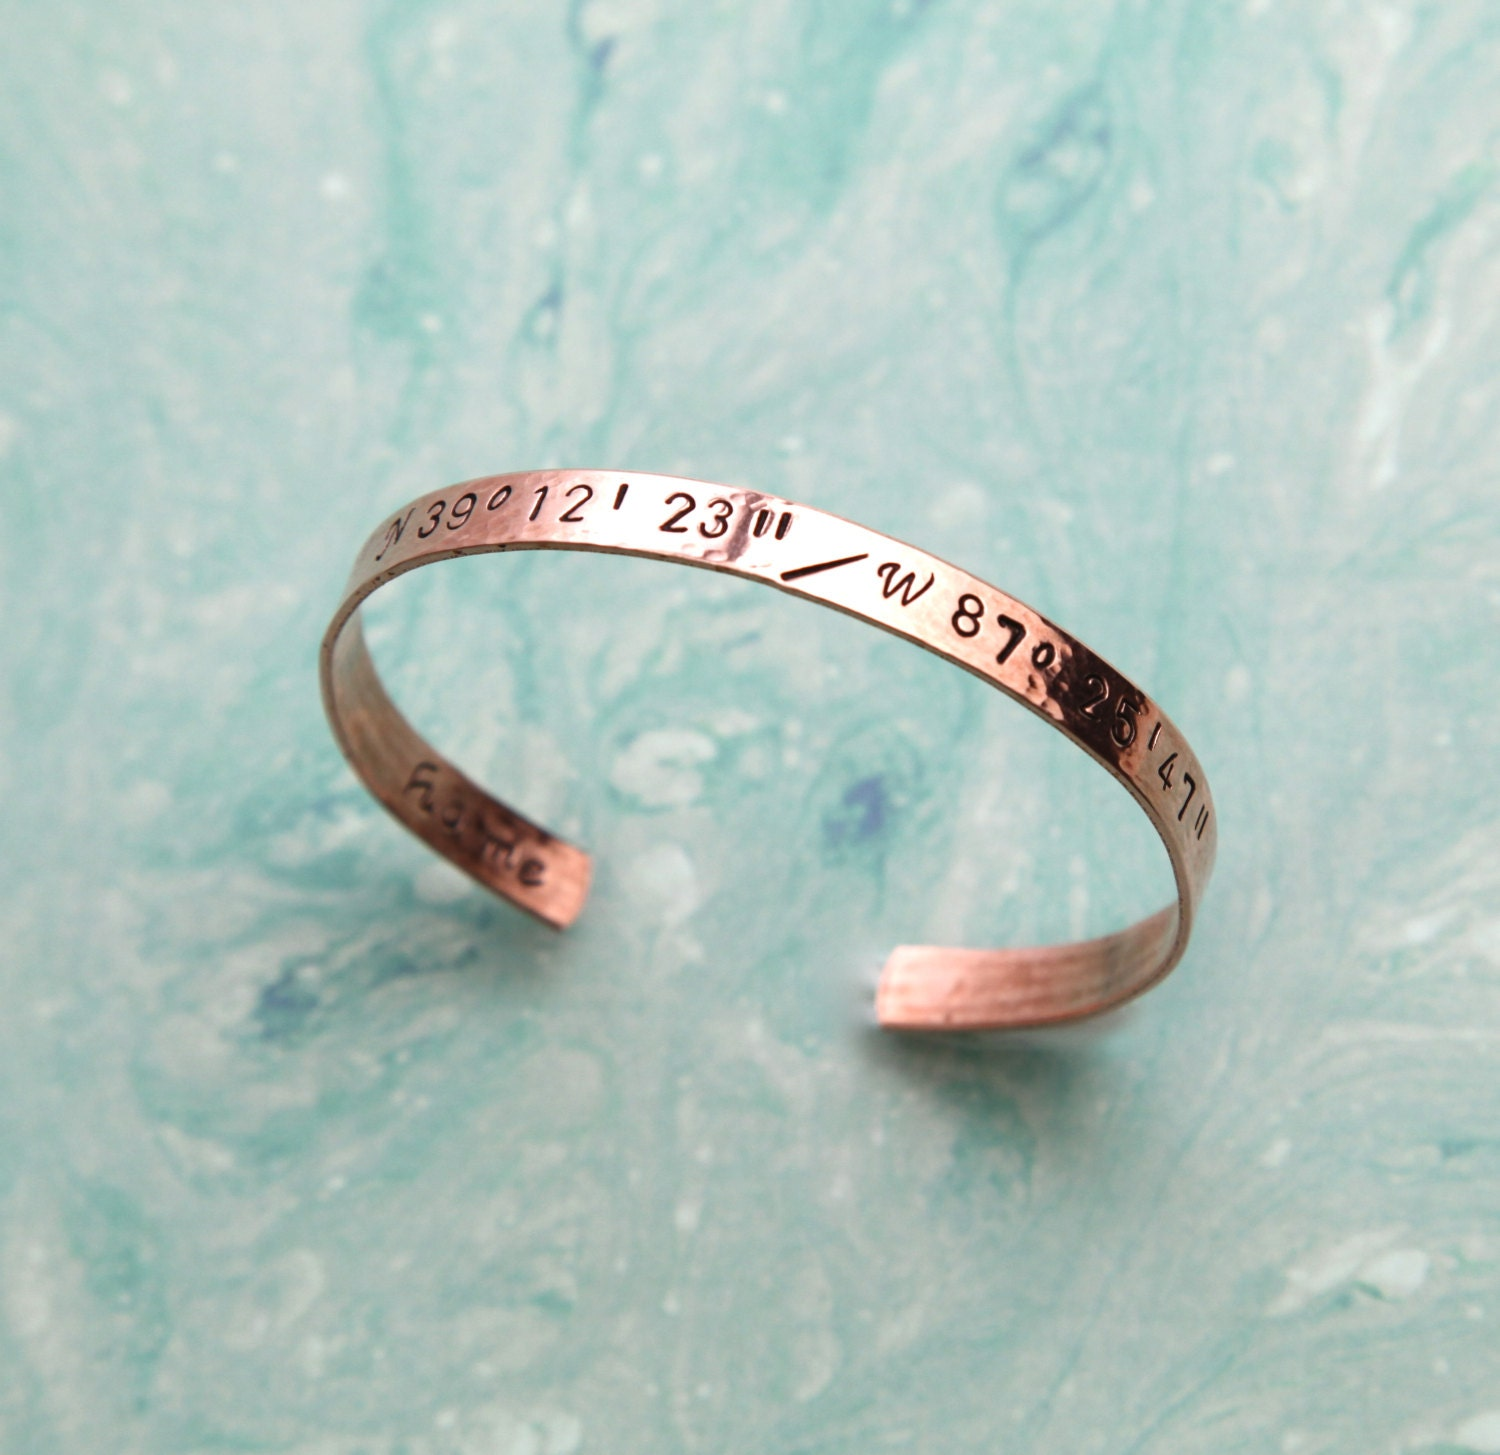 Personalized Bracelet, Geographical Coordinates Bracelet, Latitude and Longitude Bracelet, Secret Message Bracelet, Personalized Jewelry